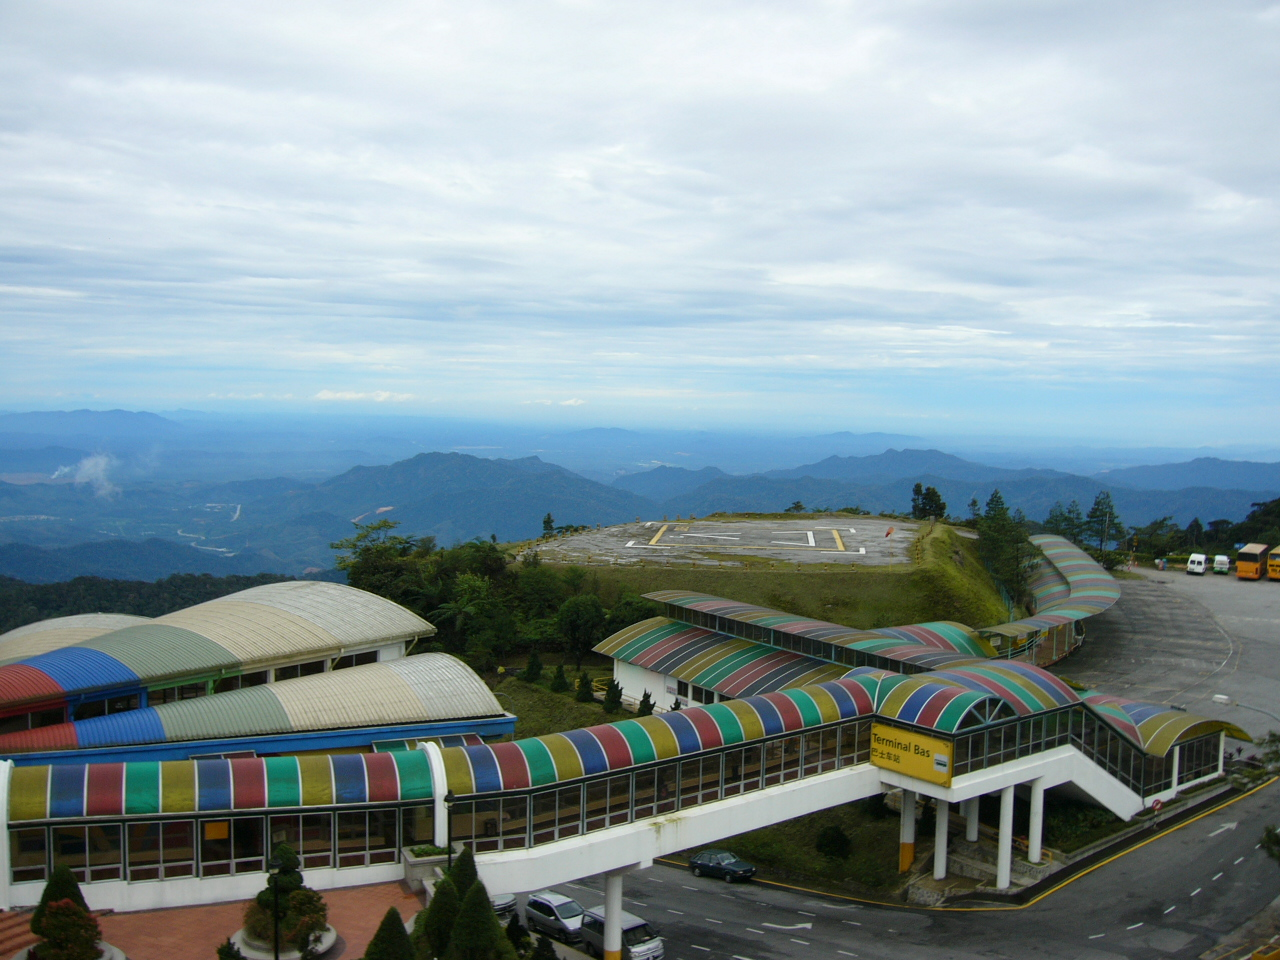 genting highlands Called genting highlands, or resorts world genting, malaysia's self-proclaimed city of entertainment is a hill resort town located an hour outside of kuala lumpur.